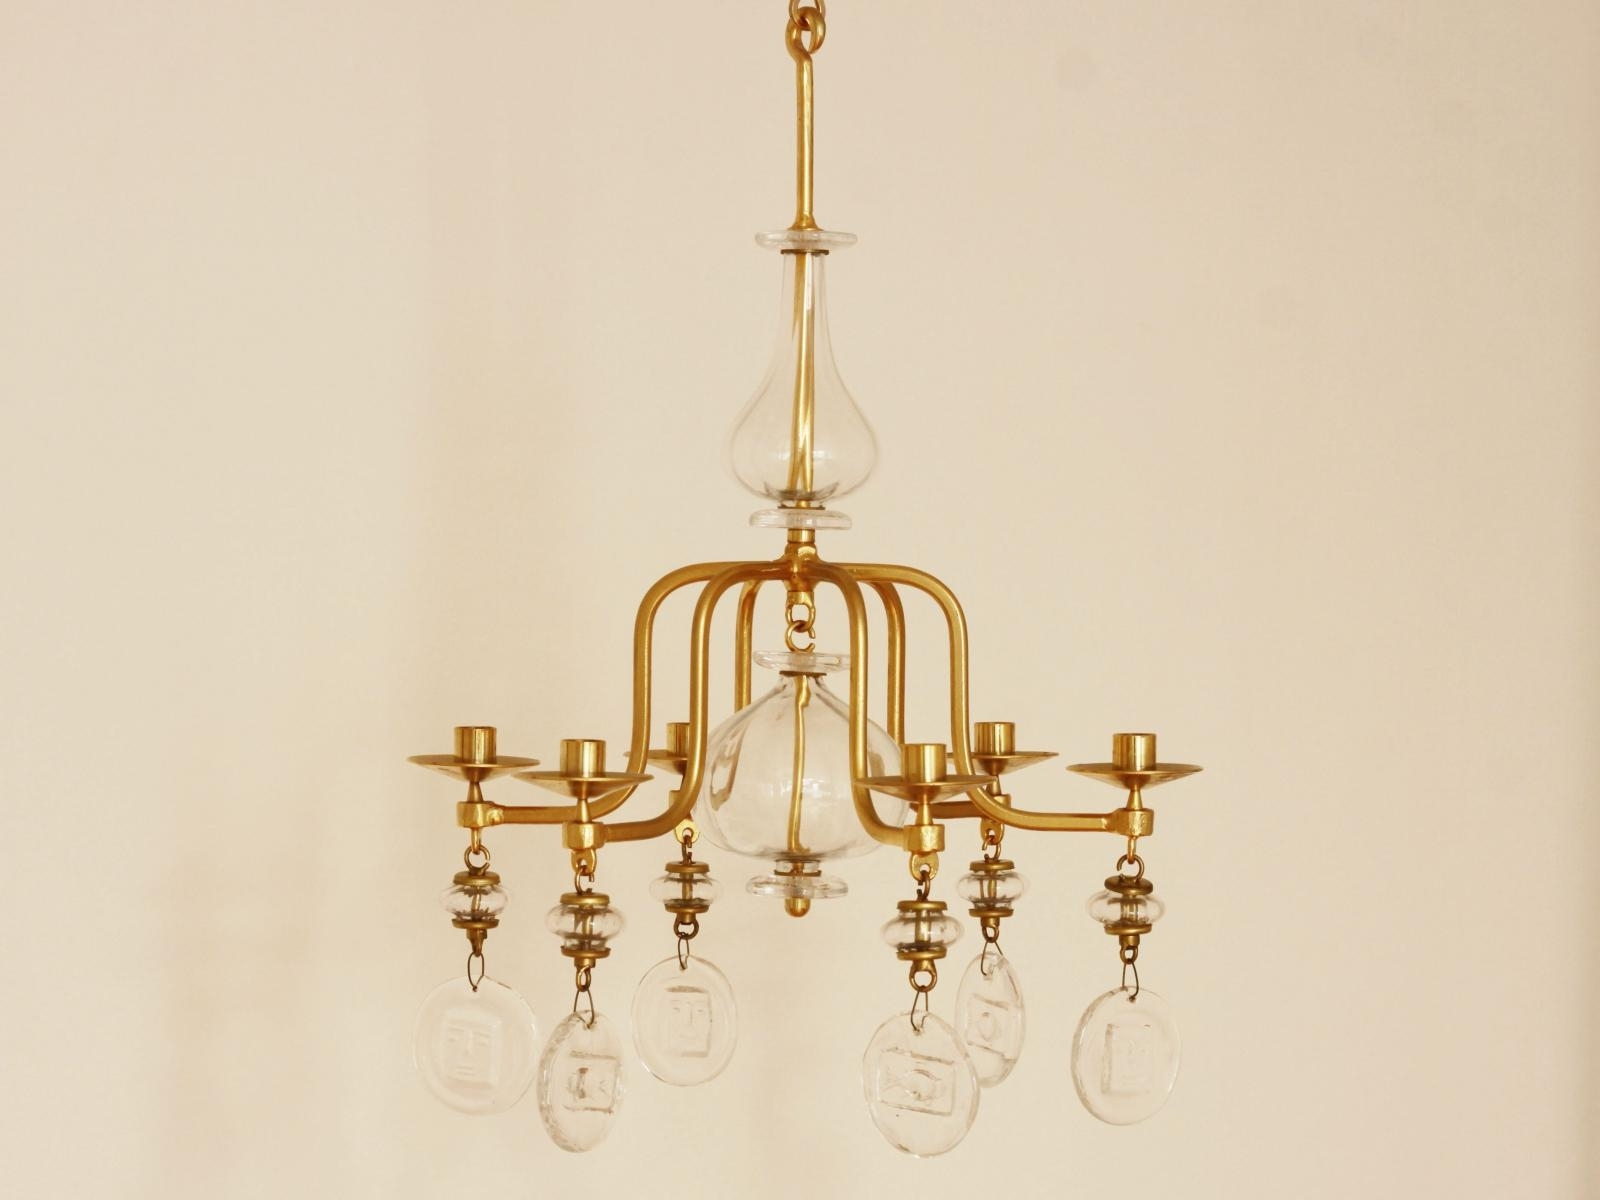 Candle Chandelier For Latest Large Mid Century Gilded Iron & Glass Candle Chandeliererik (View 3 of 15)